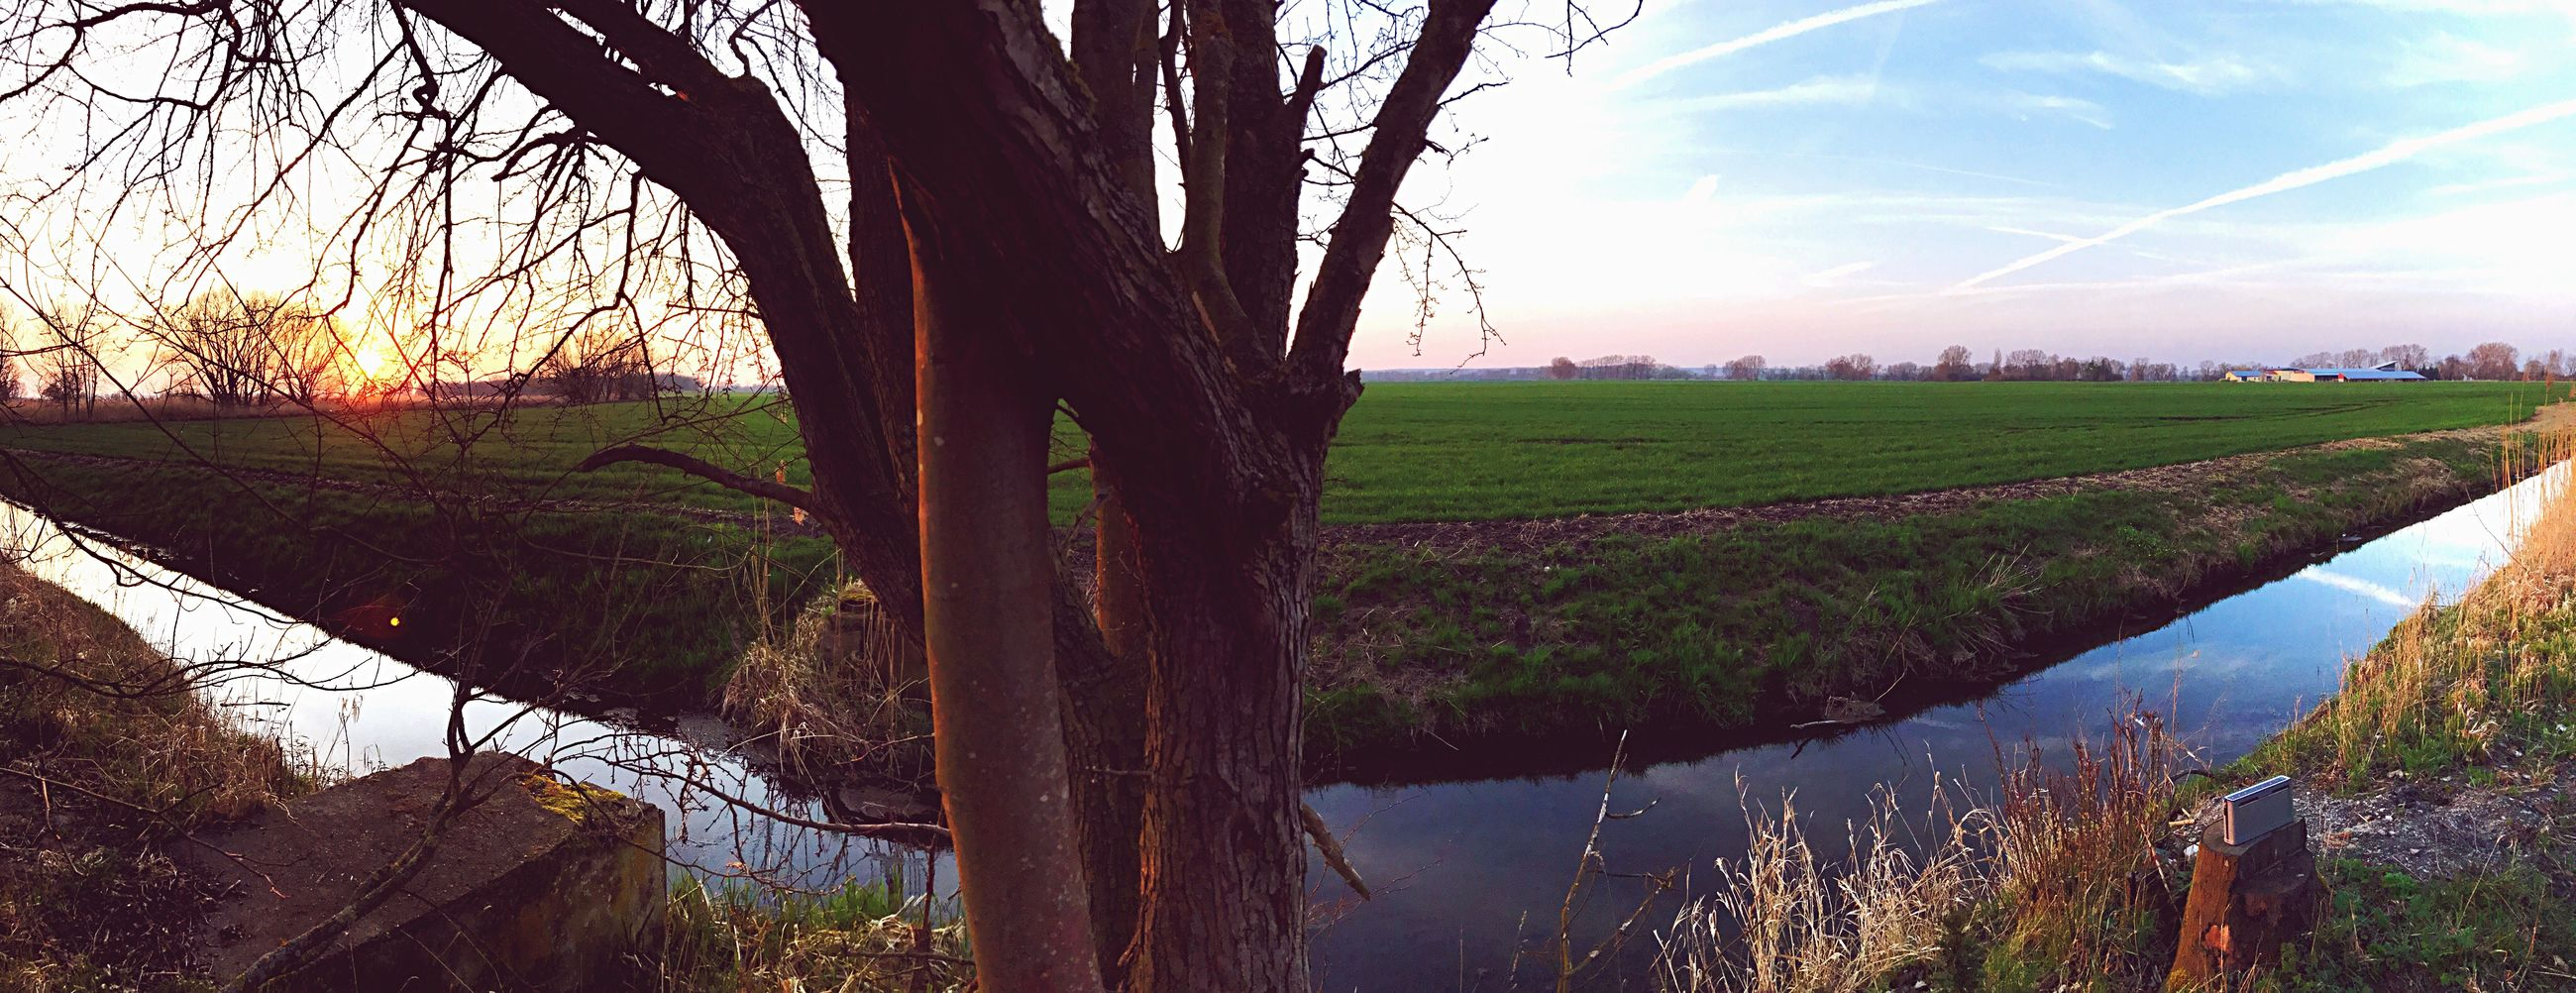 tree, nature, growth, rural scene, landscape, agriculture, sunset, outdoors, field, scenics, tranquility, sky, beauty in nature, tranquil scene, social issues, no people, day